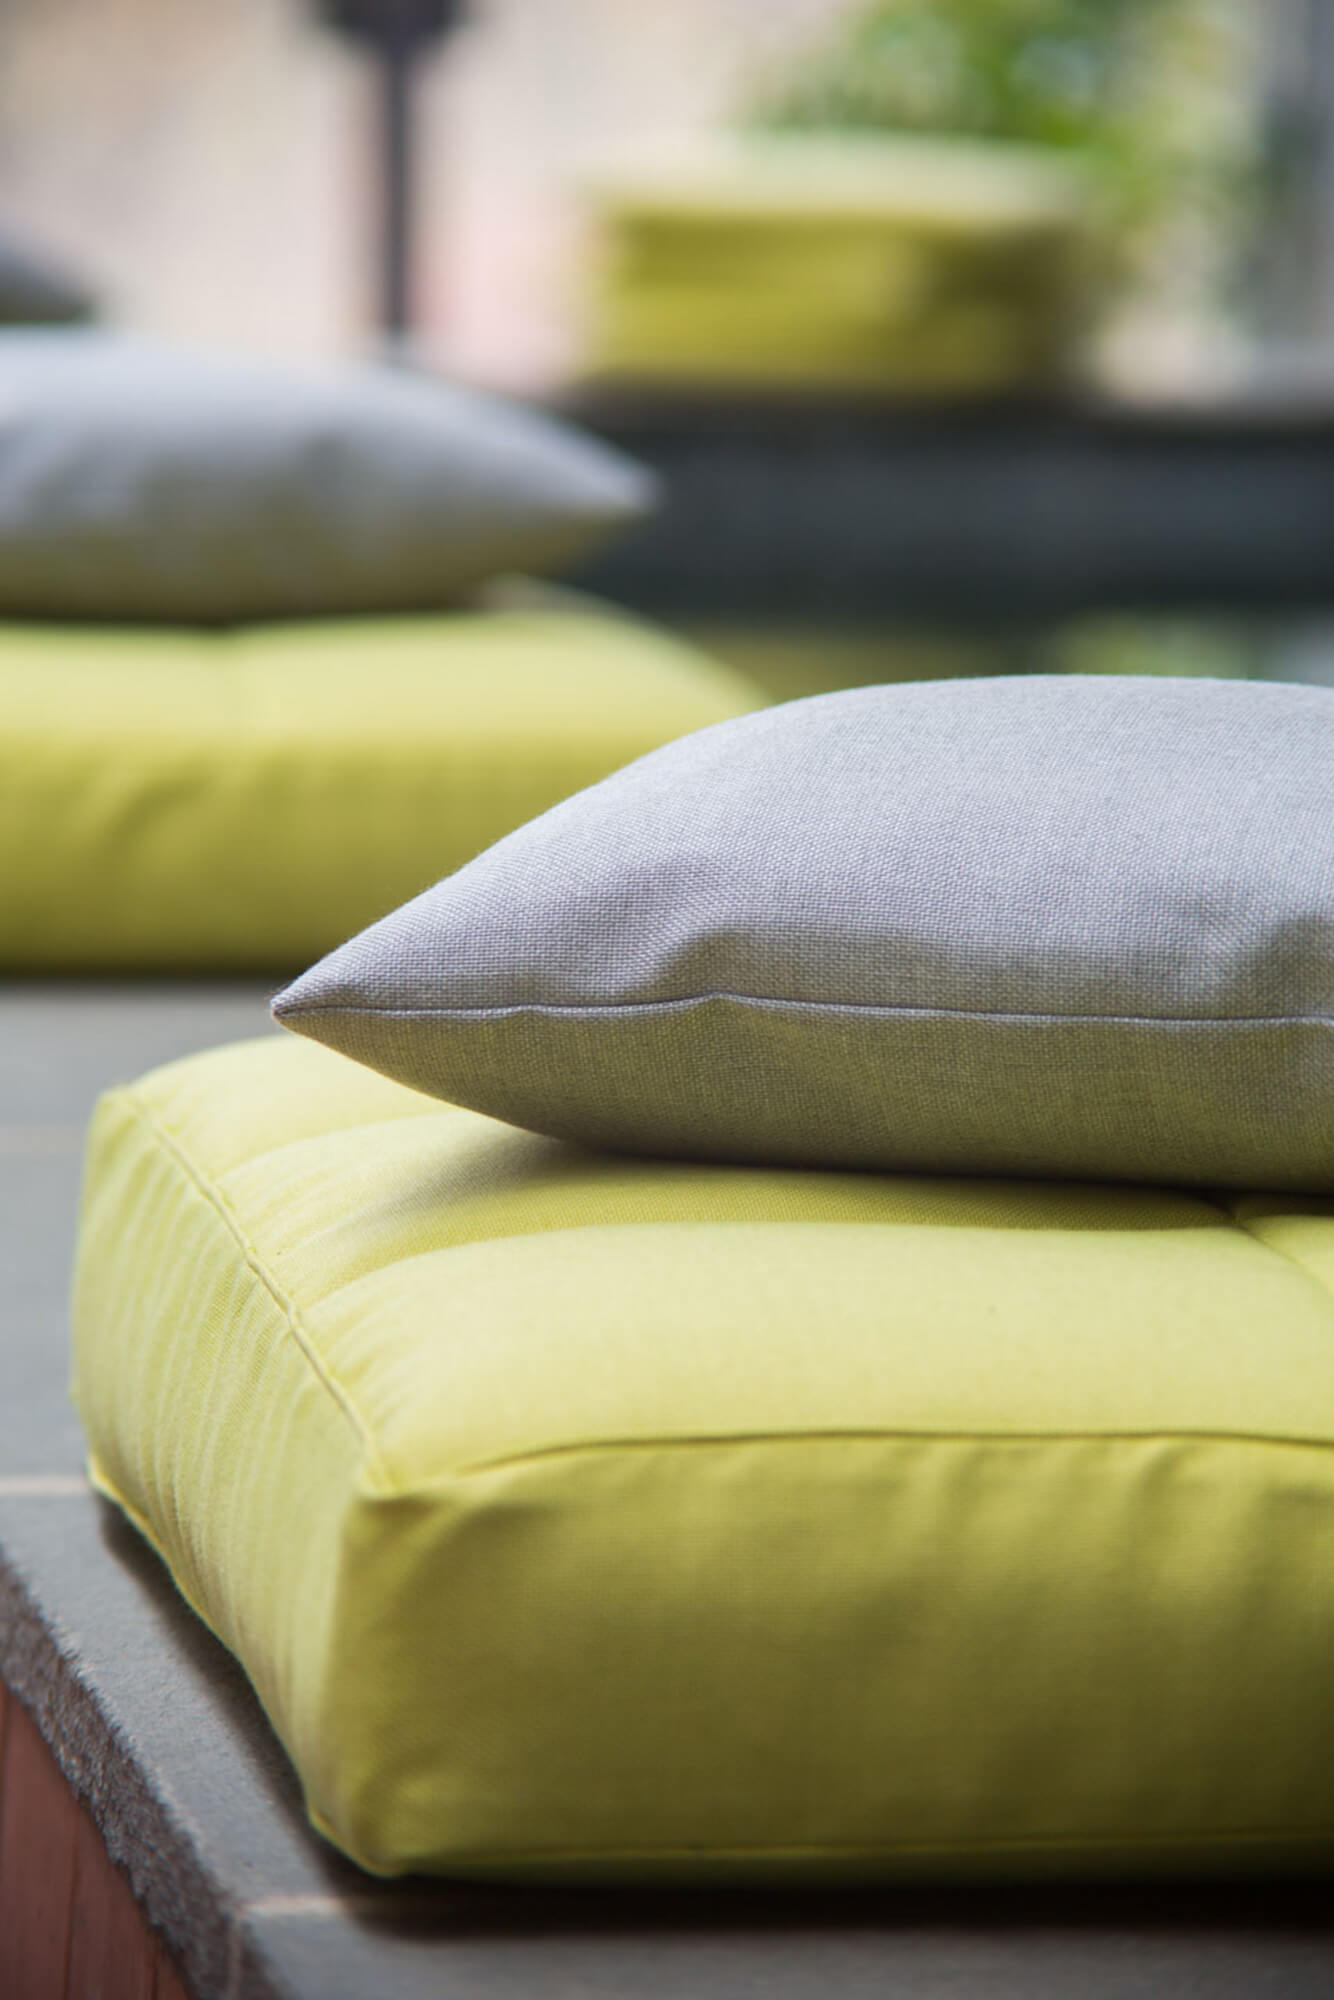 Stacked grey and green pillows made using fabrics from the Sunbrella Shift collection